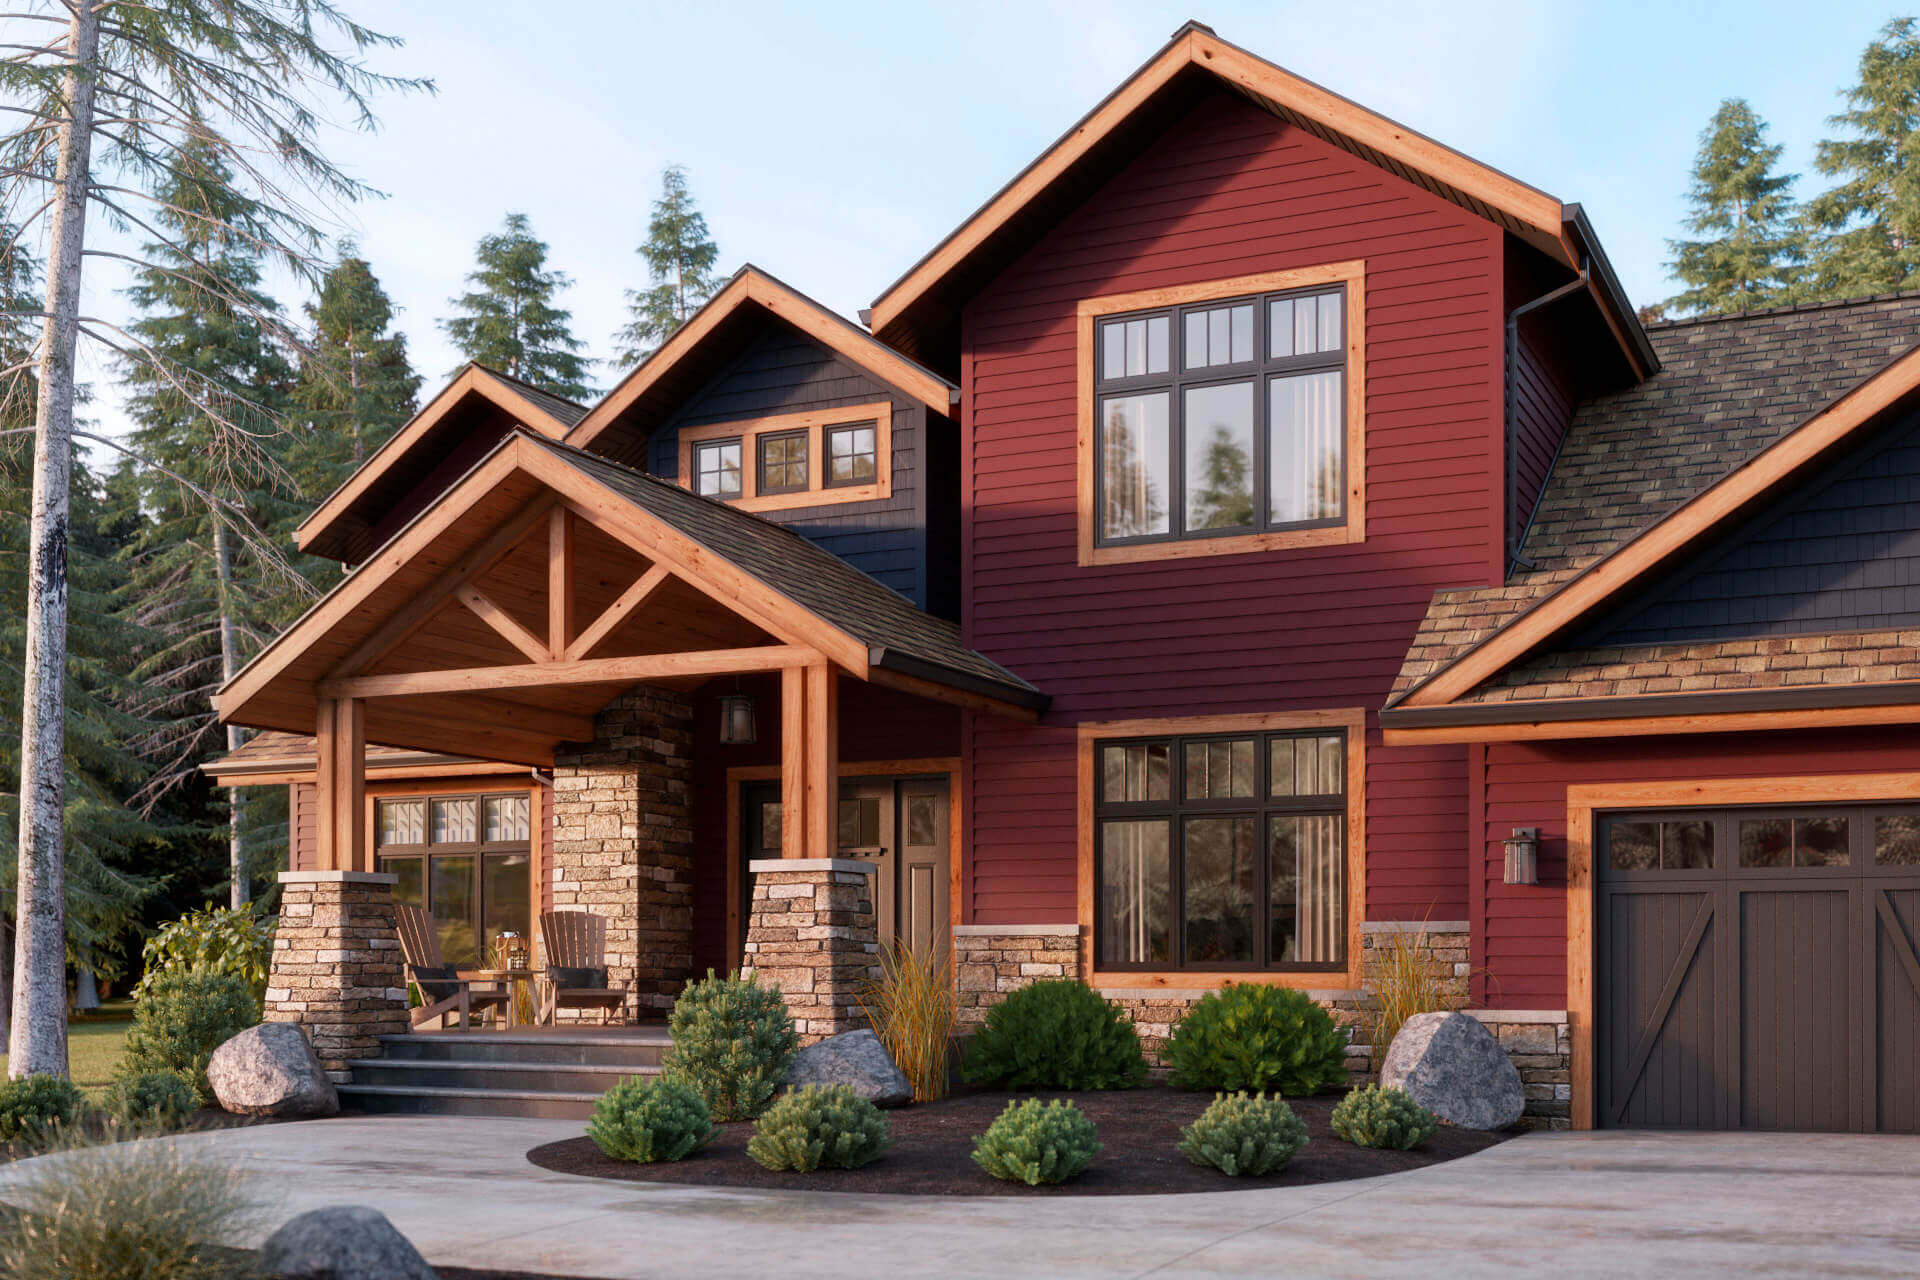 7 Best House Siding Options From Budget-Friendly To High-End on Modern House Siding Ideas  id=30941